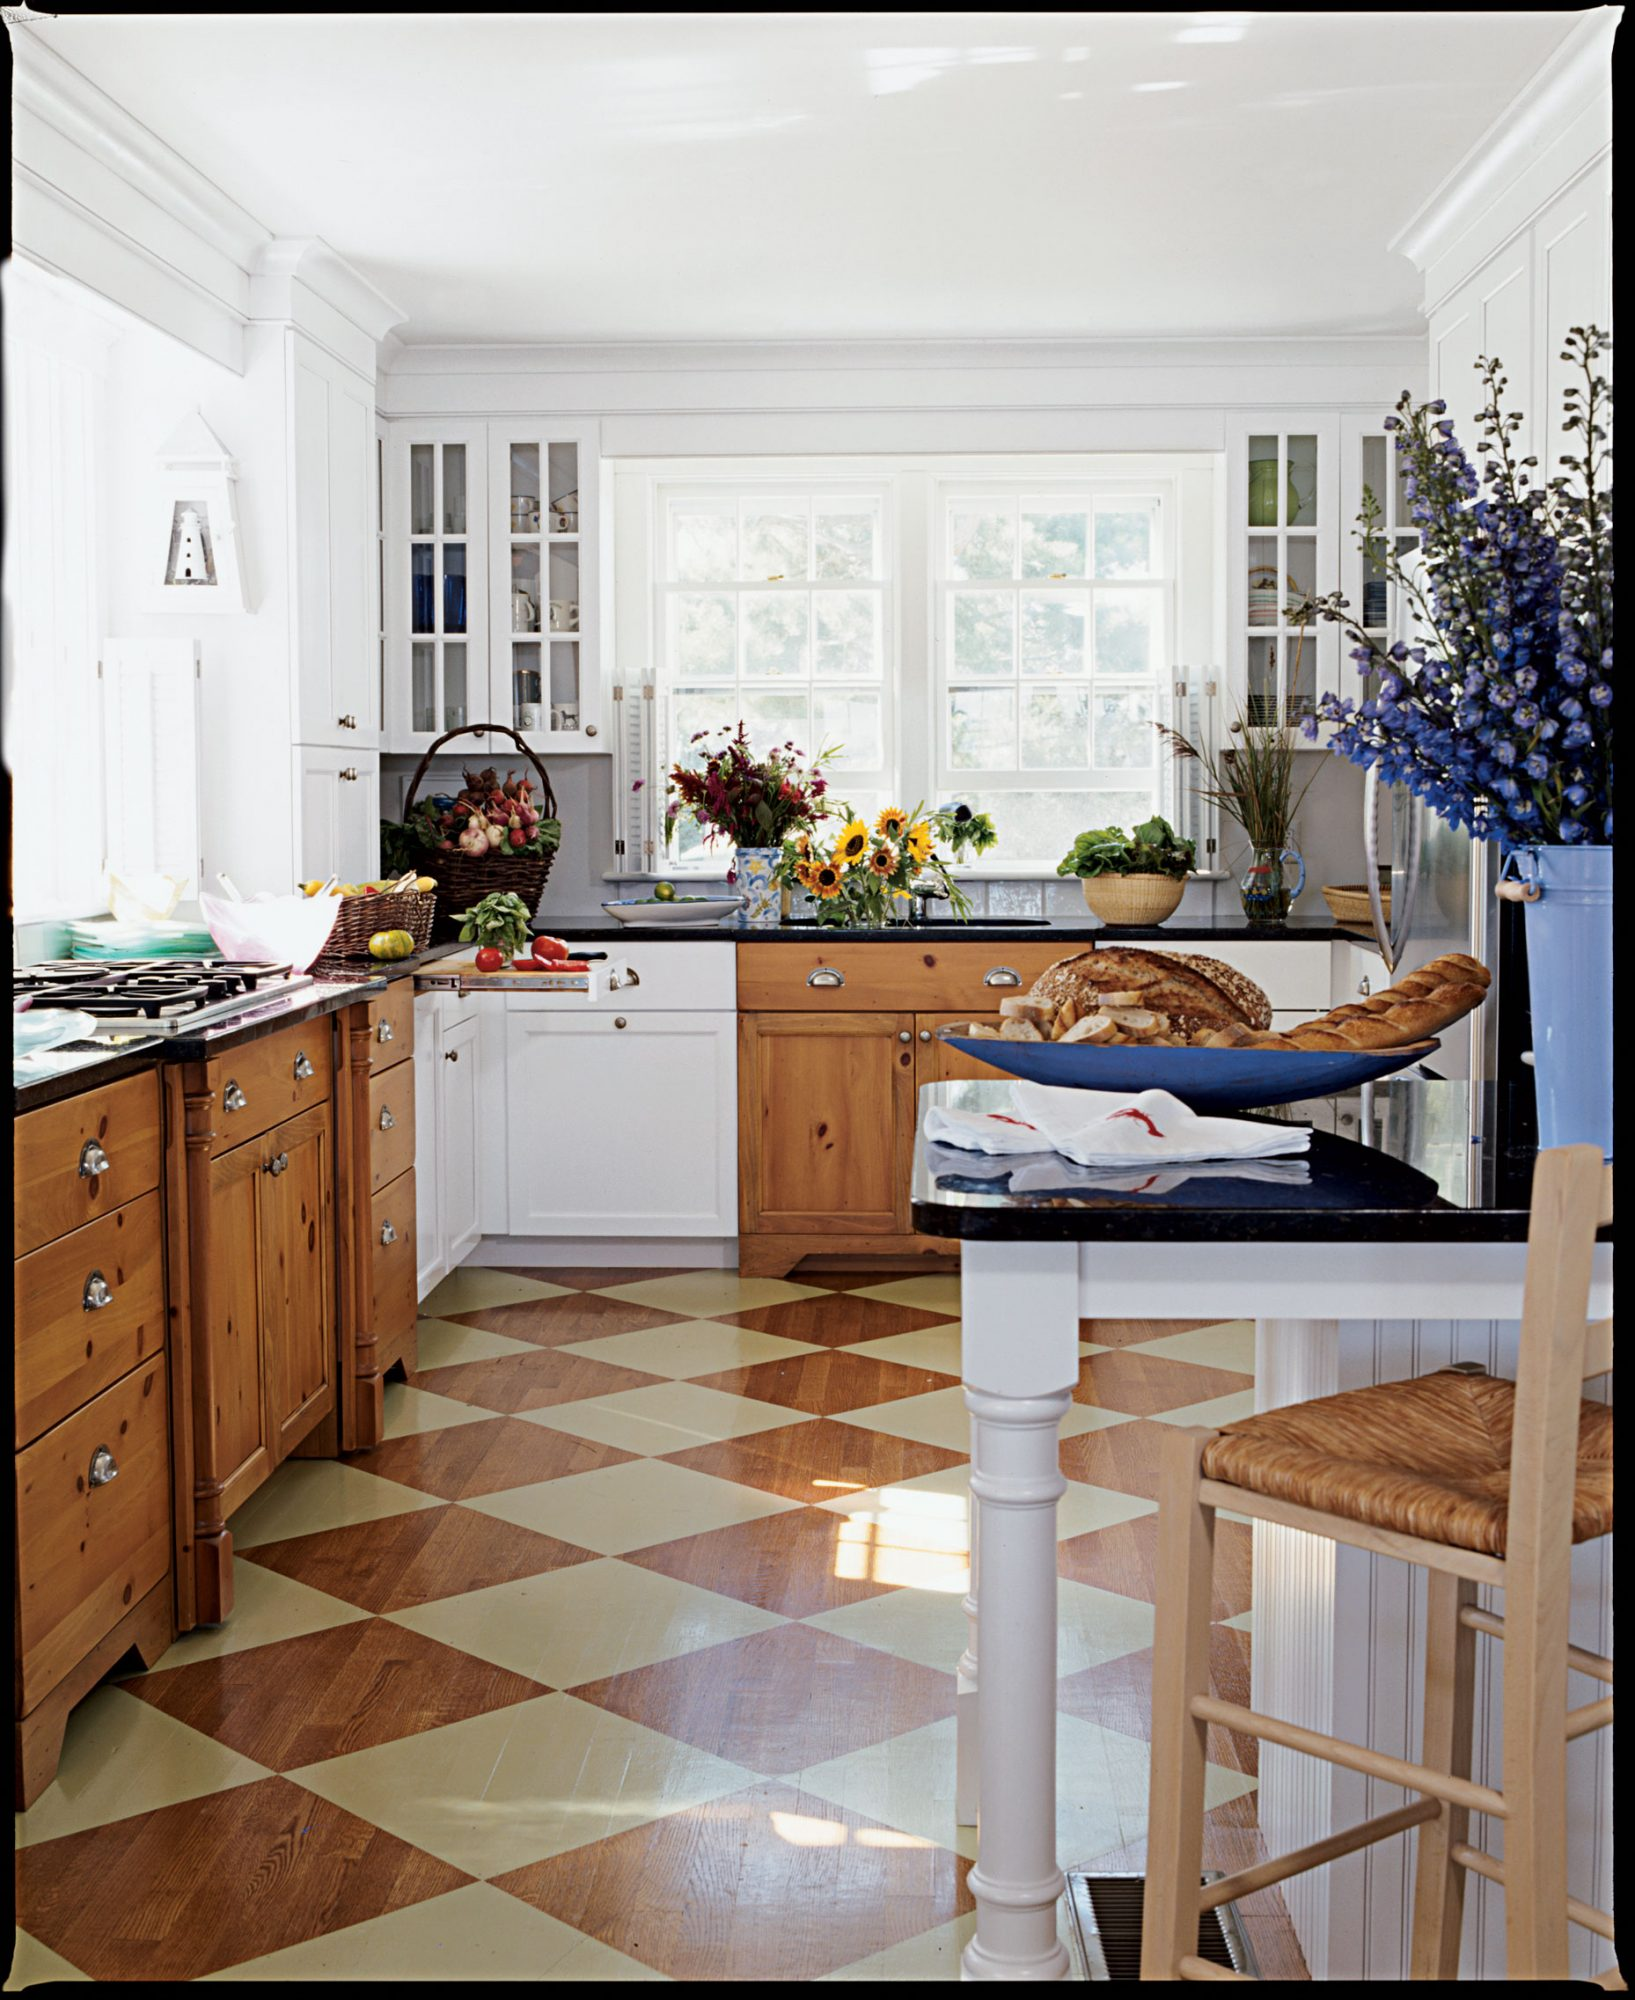 This pleasant kitchen has painted floors in a checkerboard pattern to add some interest under your feet. Playful flooring is an unexpected way to have some fun with your design scheme.